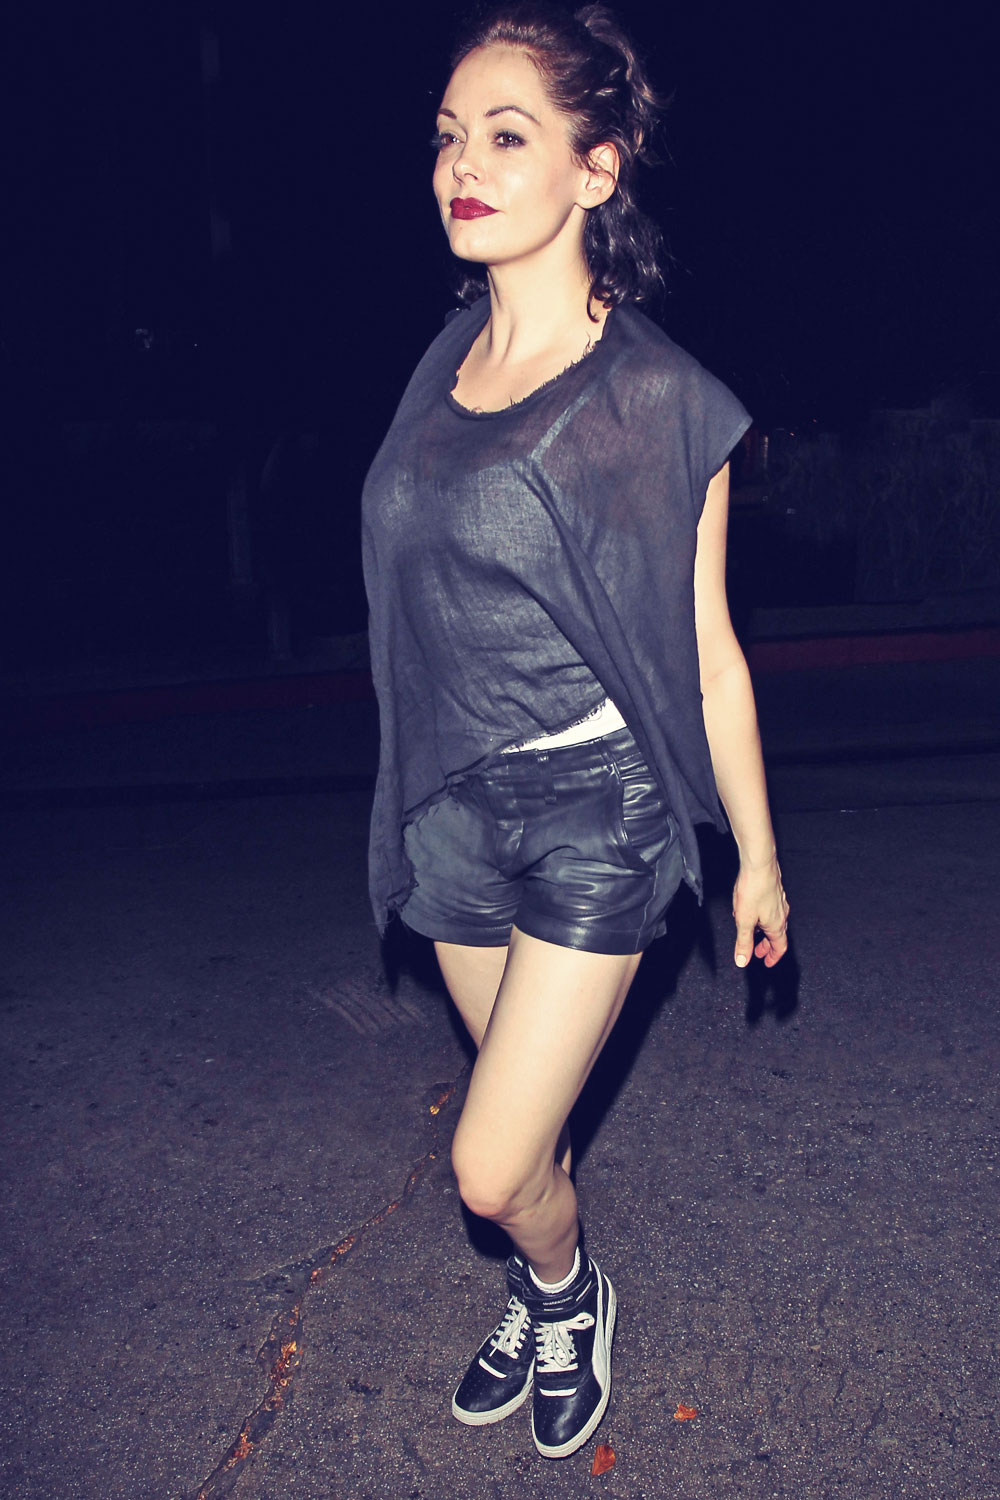 Rose McGowan at Chateau Marmont